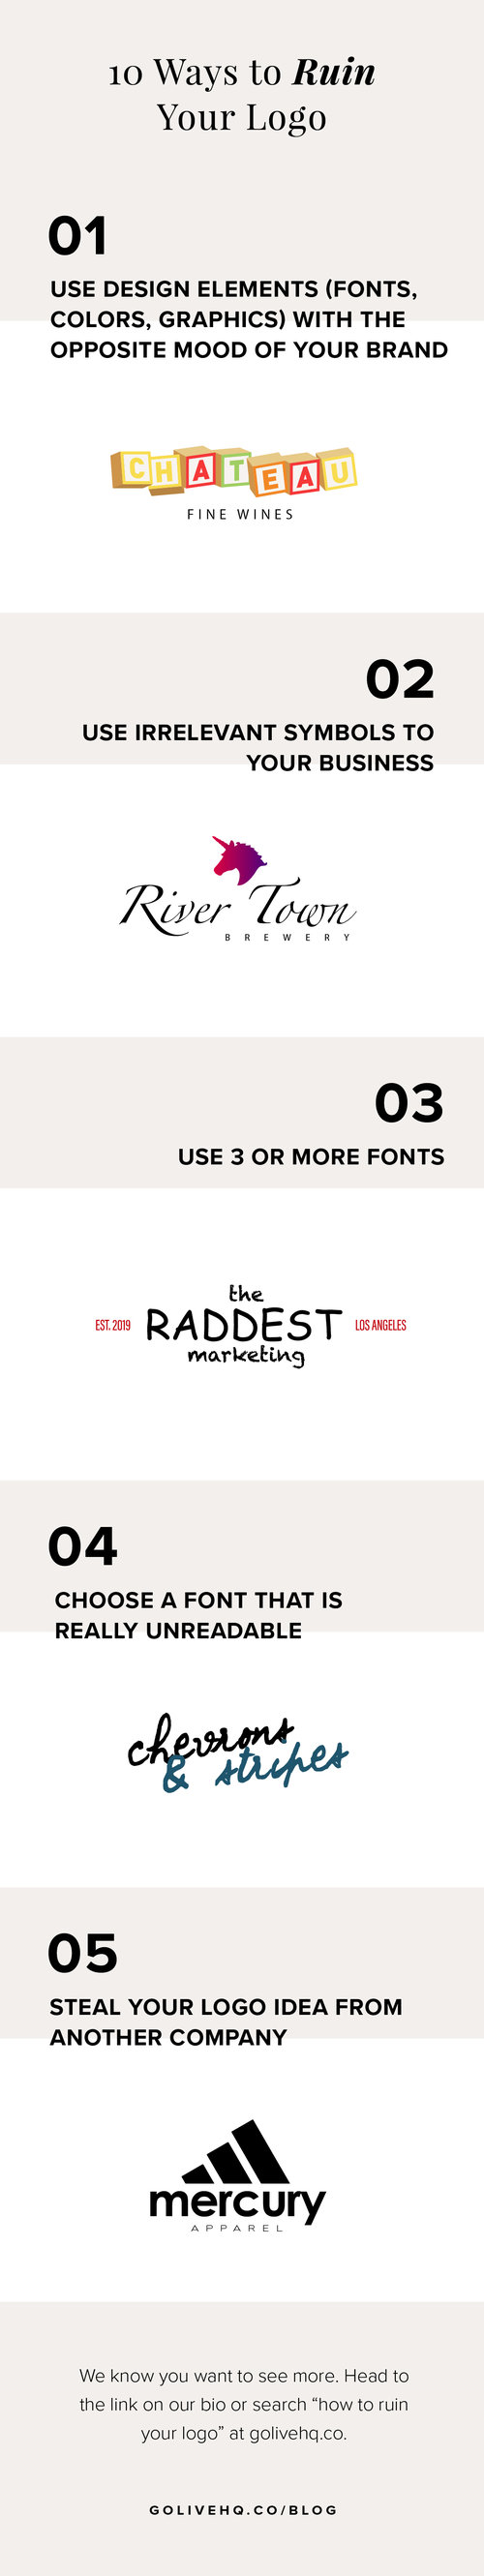 How+To+Ruin+Your+Logo+Design+_+By+GoLive.jpg